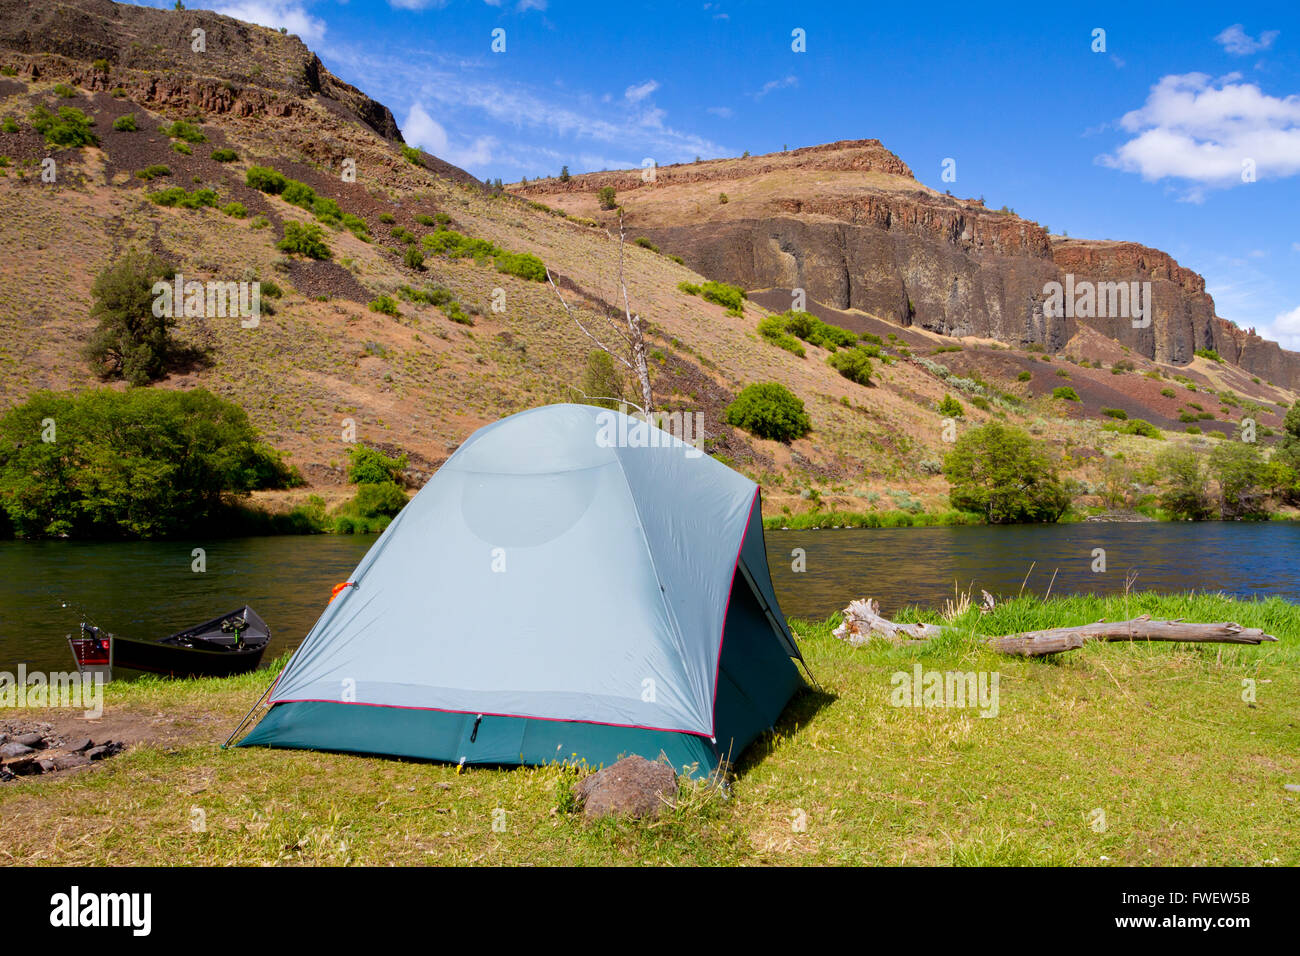 A rustic tent c&site on the Deschutes River in Oregon shows a tent setup next to a boat and the river. This is form a float ca & A rustic tent campsite on the Deschutes River in Oregon shows a ...